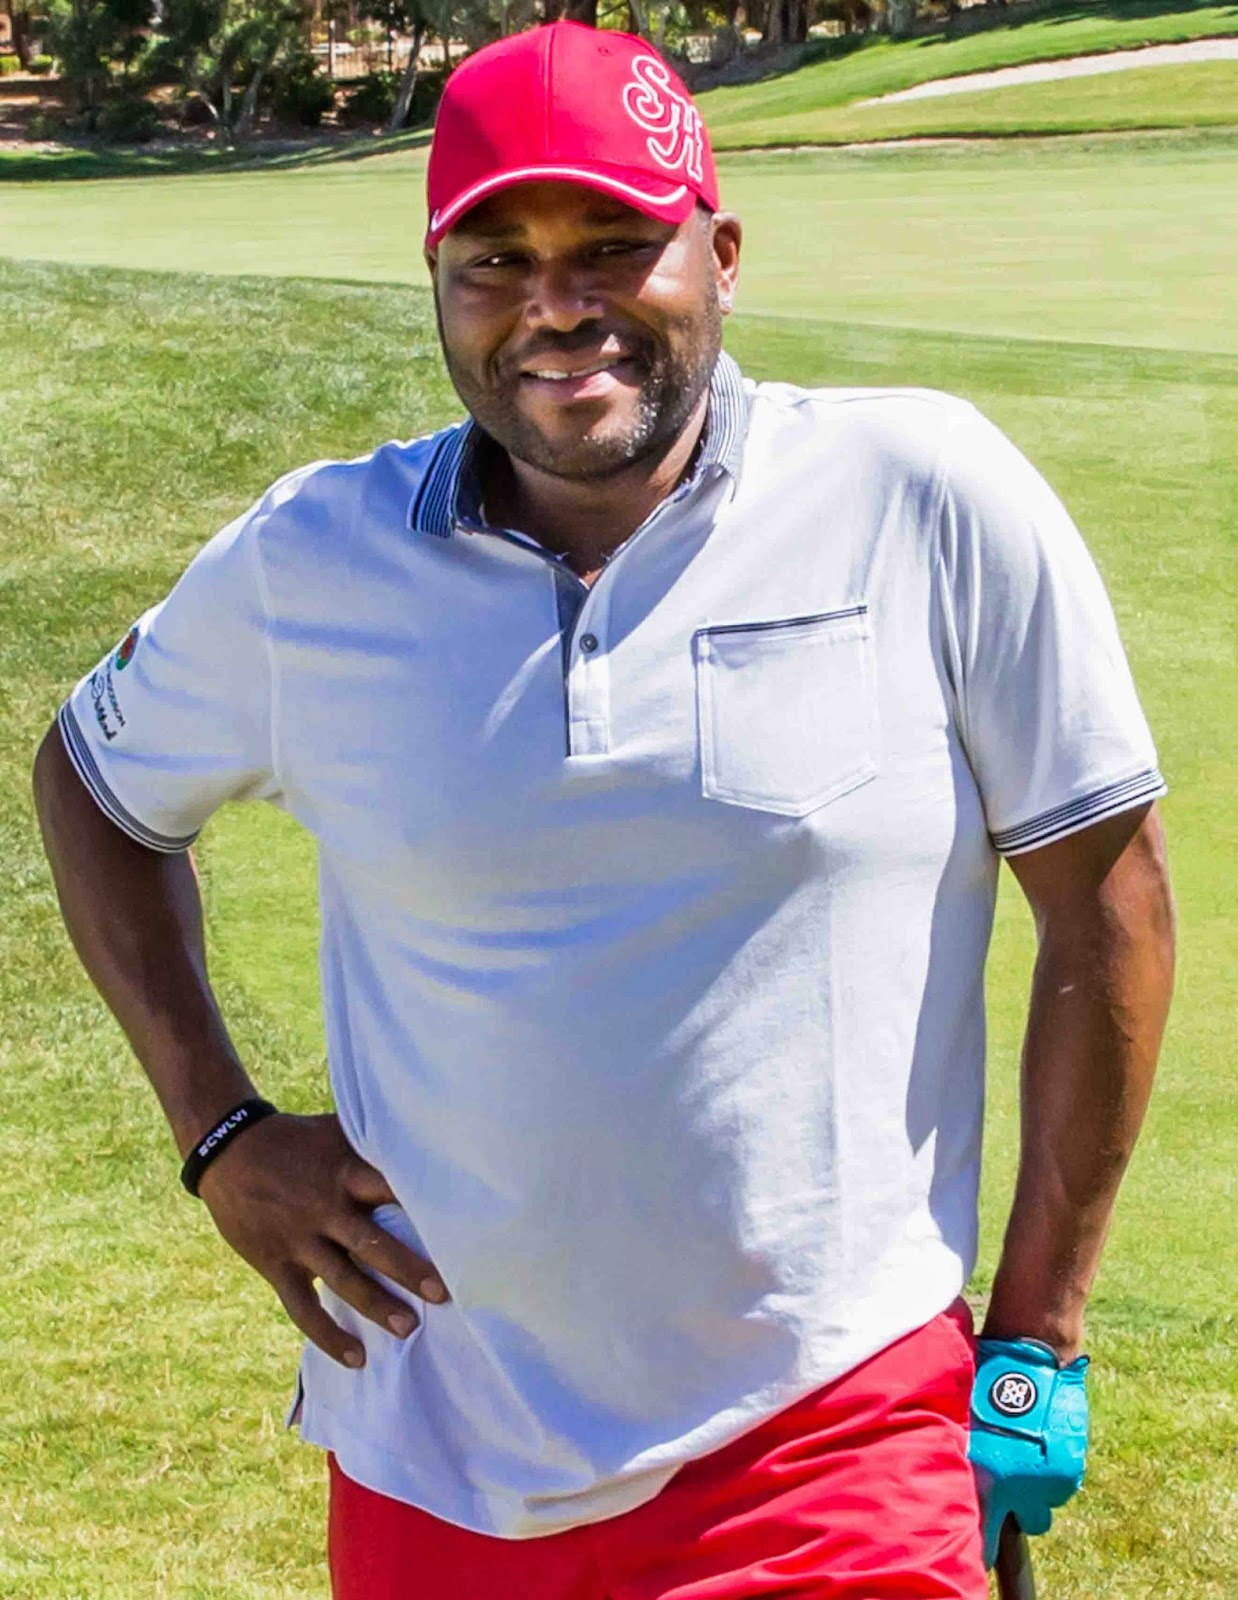 Anthony Anderson   Anthony Anderson served as the host of Golf in America, a series we produced for The Golf Channel.